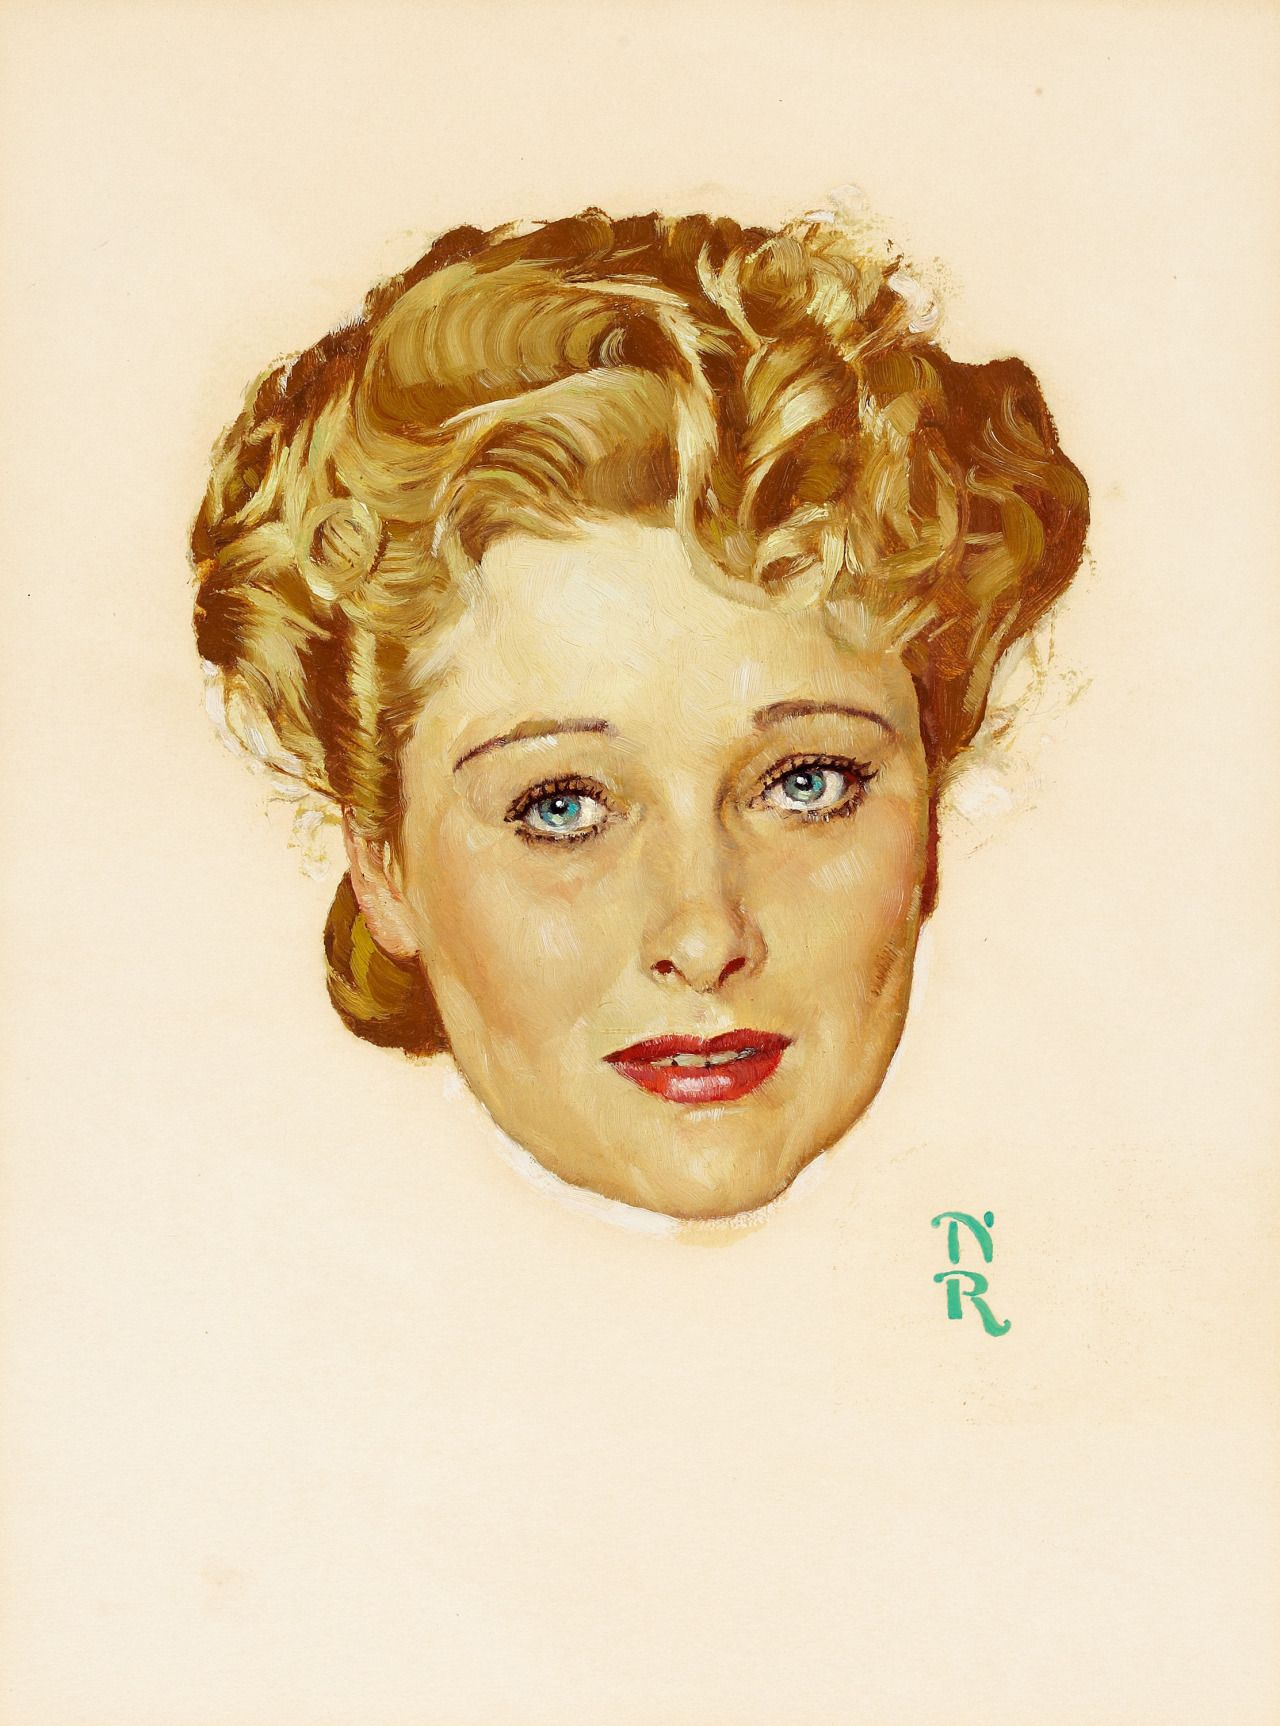 norman rockwell | Tumblr | Norman Rockwell and Other American Artist ...